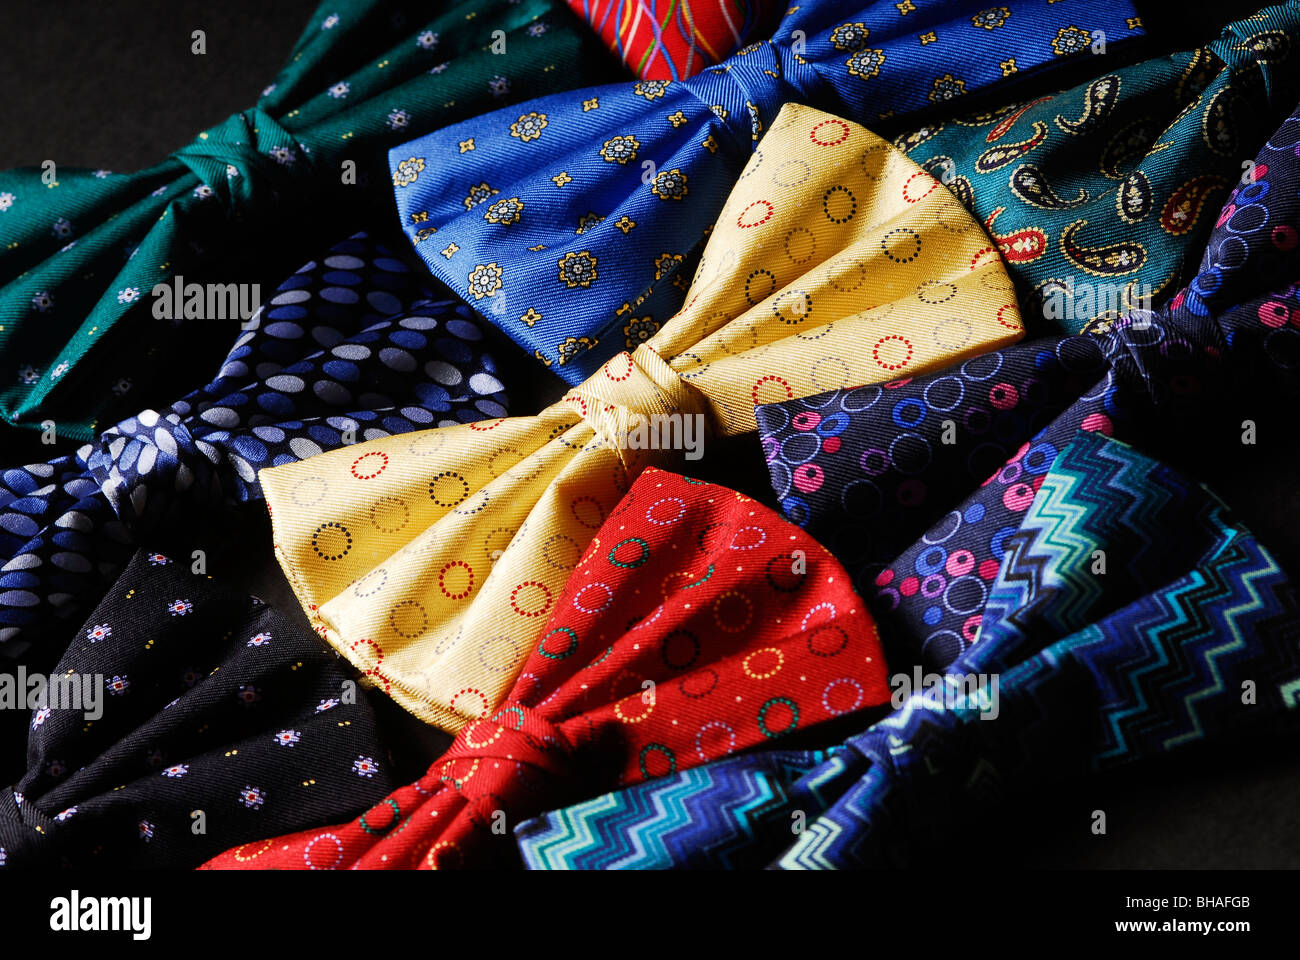 Colourful bow ties on a black background UK - Stock Image